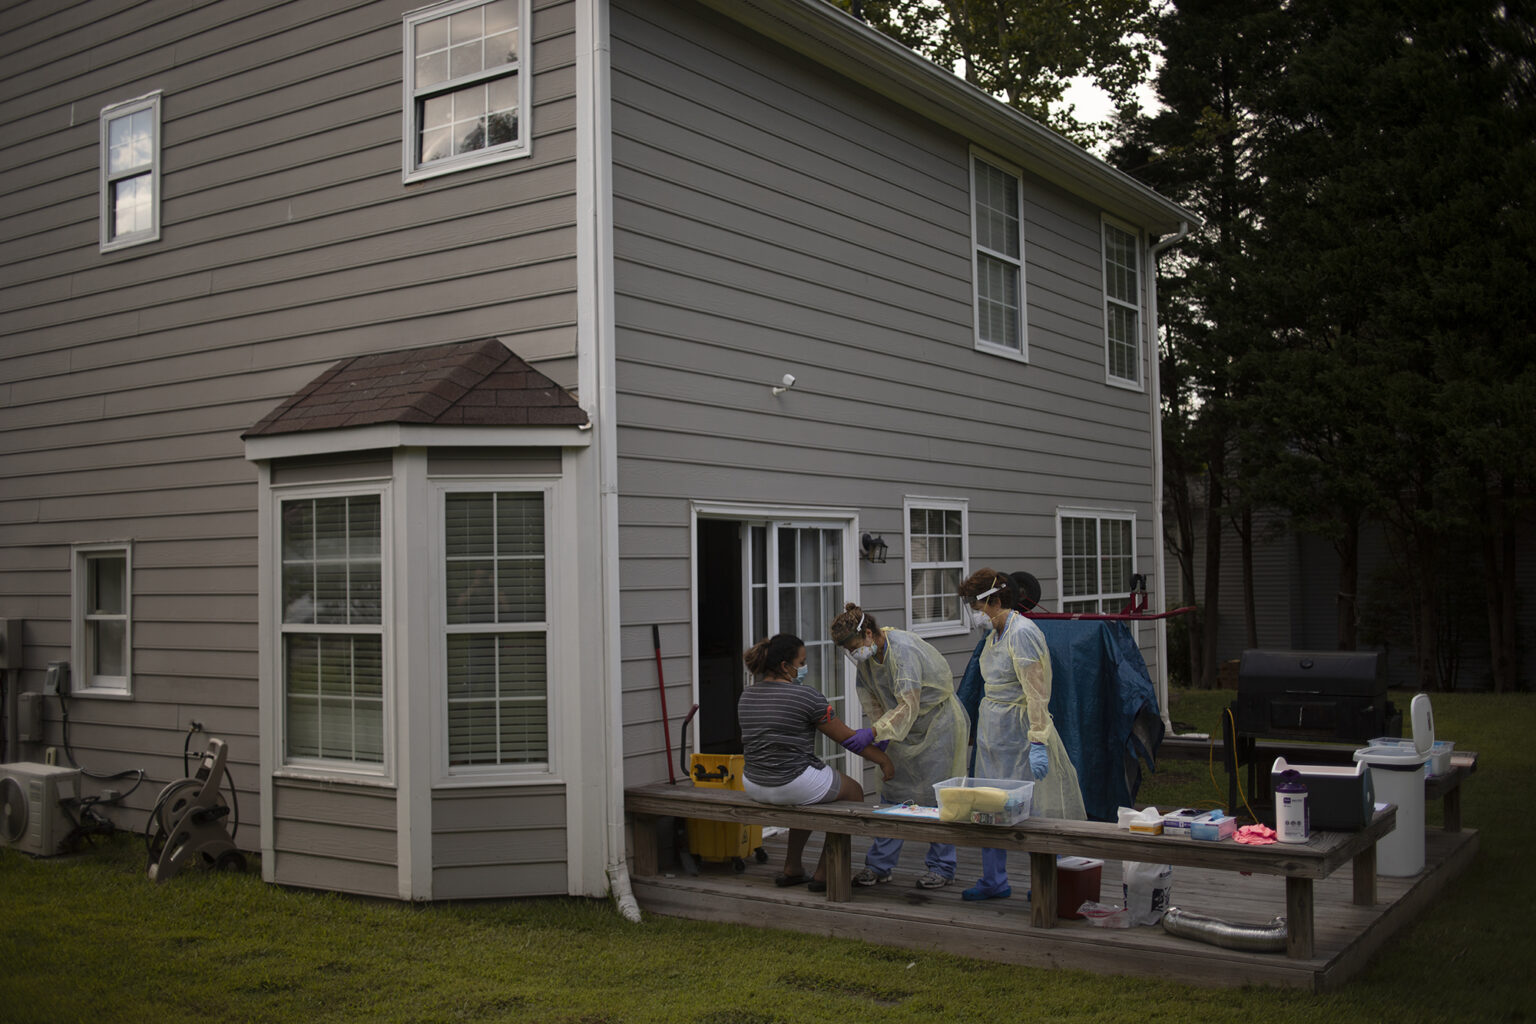 Researchers take samples from a patient outside their home.